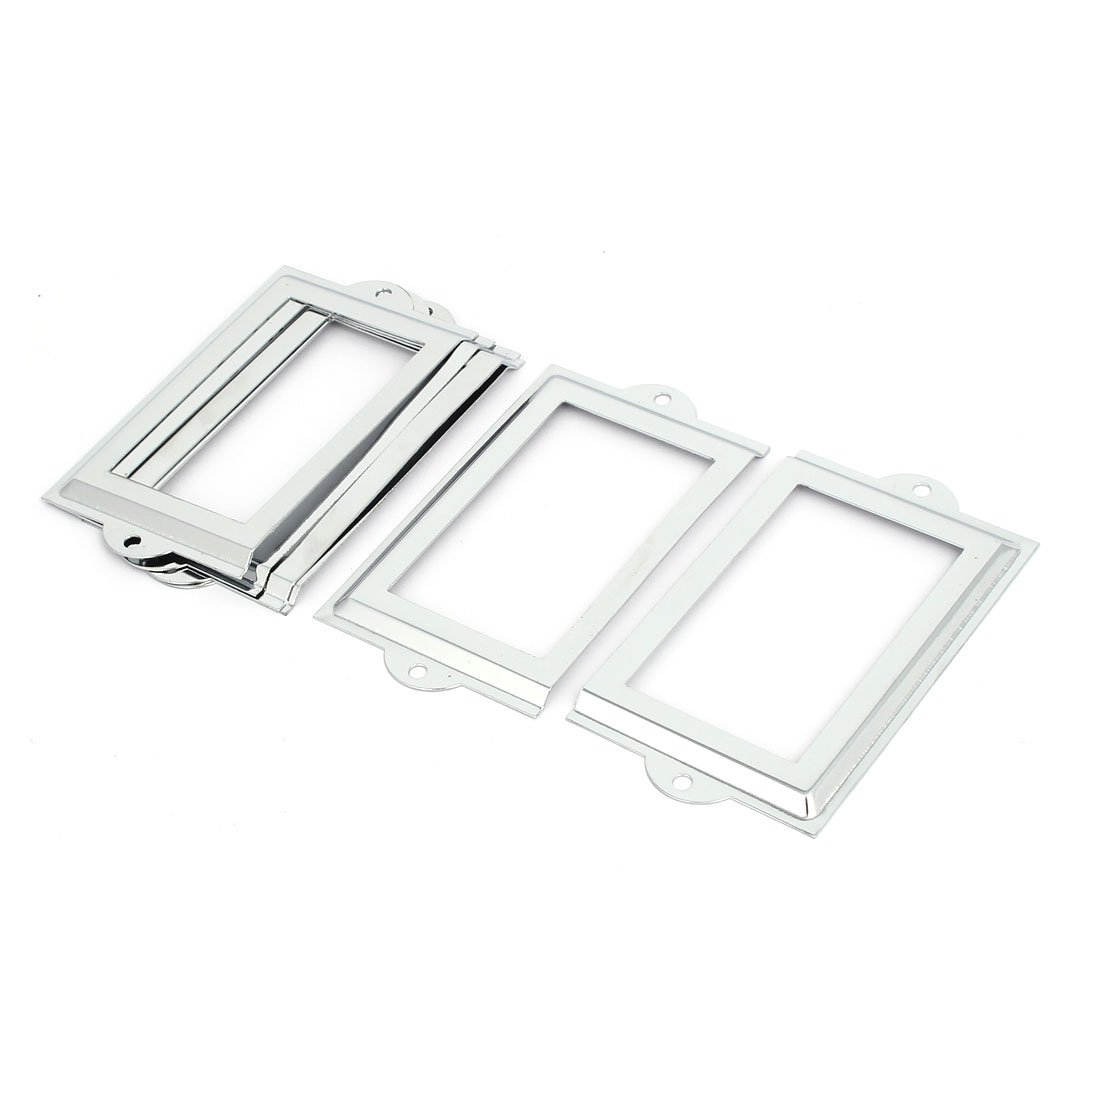 uxcell Office File Drawer 105mm x 60mm Tag Label Holders Frames Silver Tone 6PCS